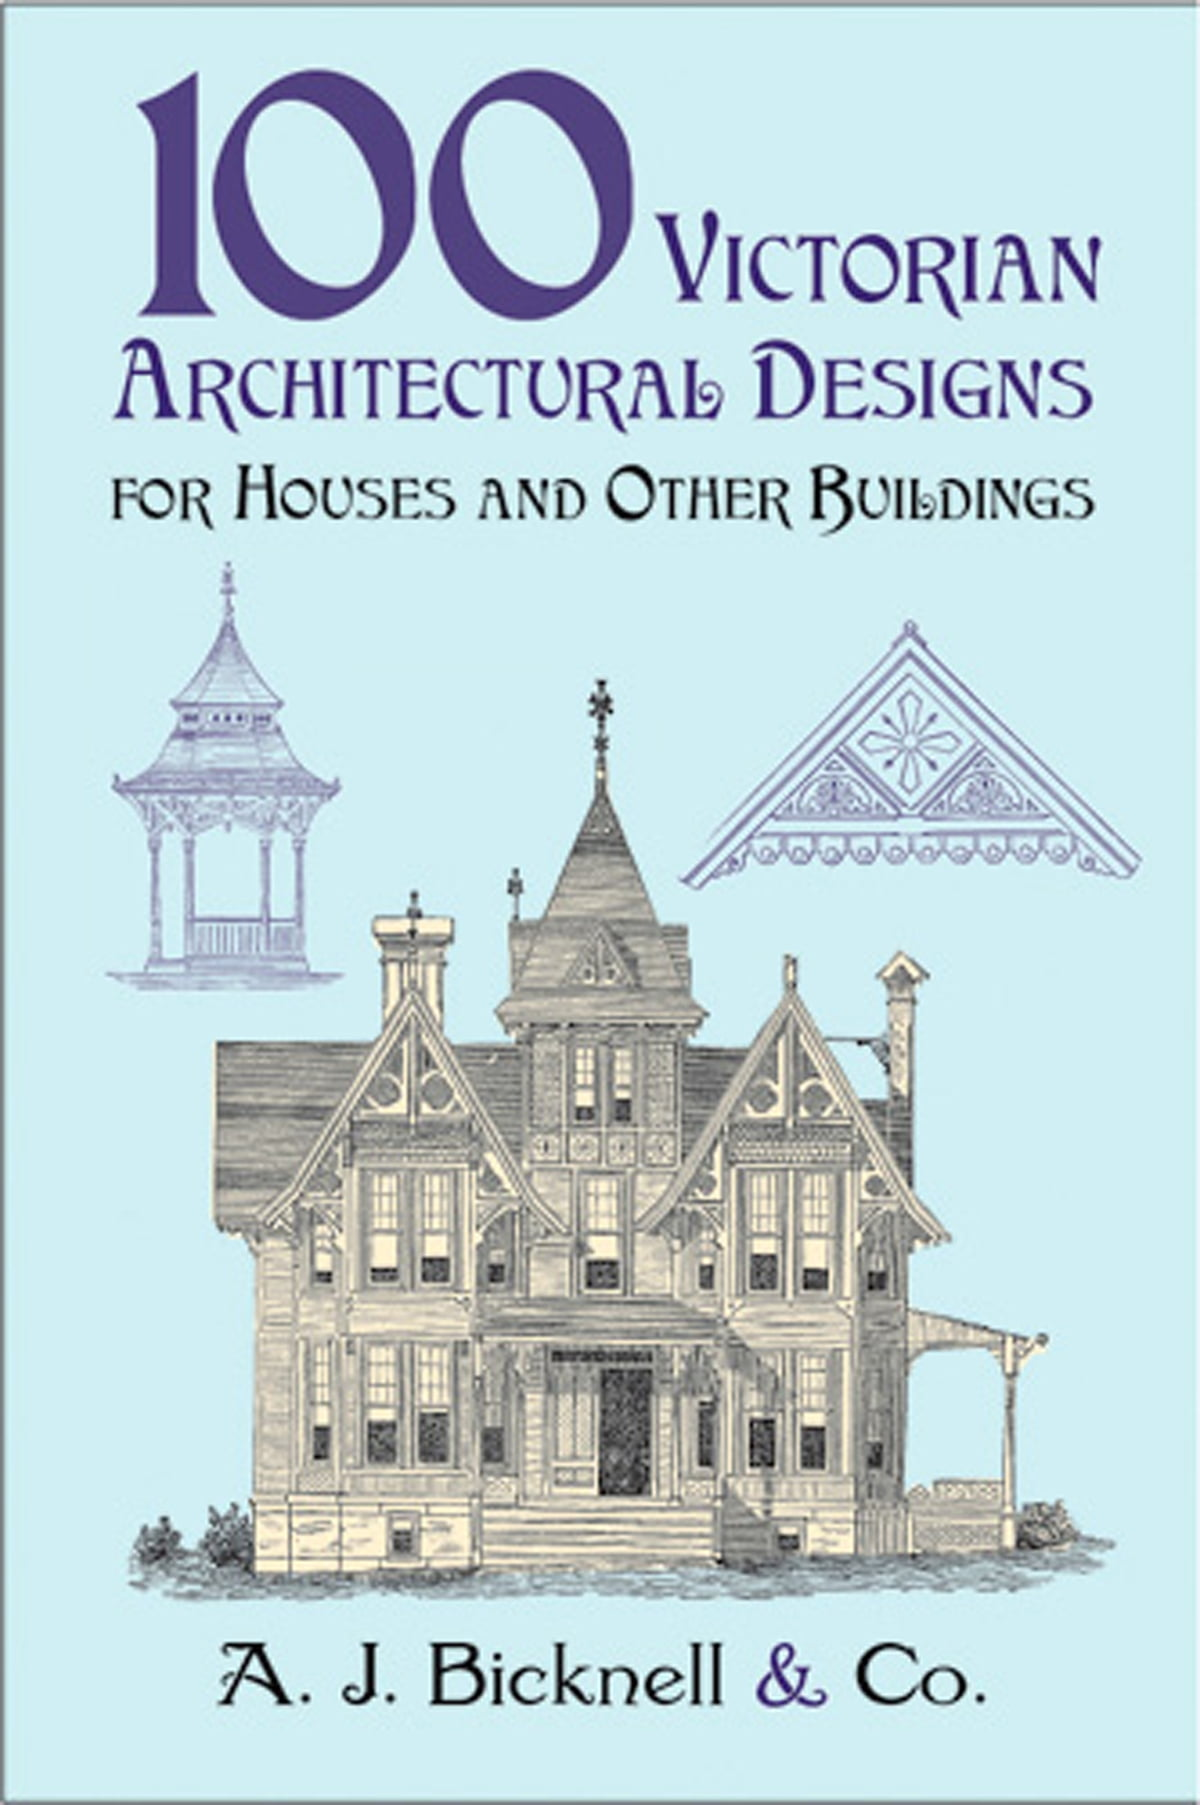 100 Victorian Architectural Designs for Houses and Other Buildings eBook by  A. J. Bicknell & Co. - 9780486146195 | Rakuten Kobo